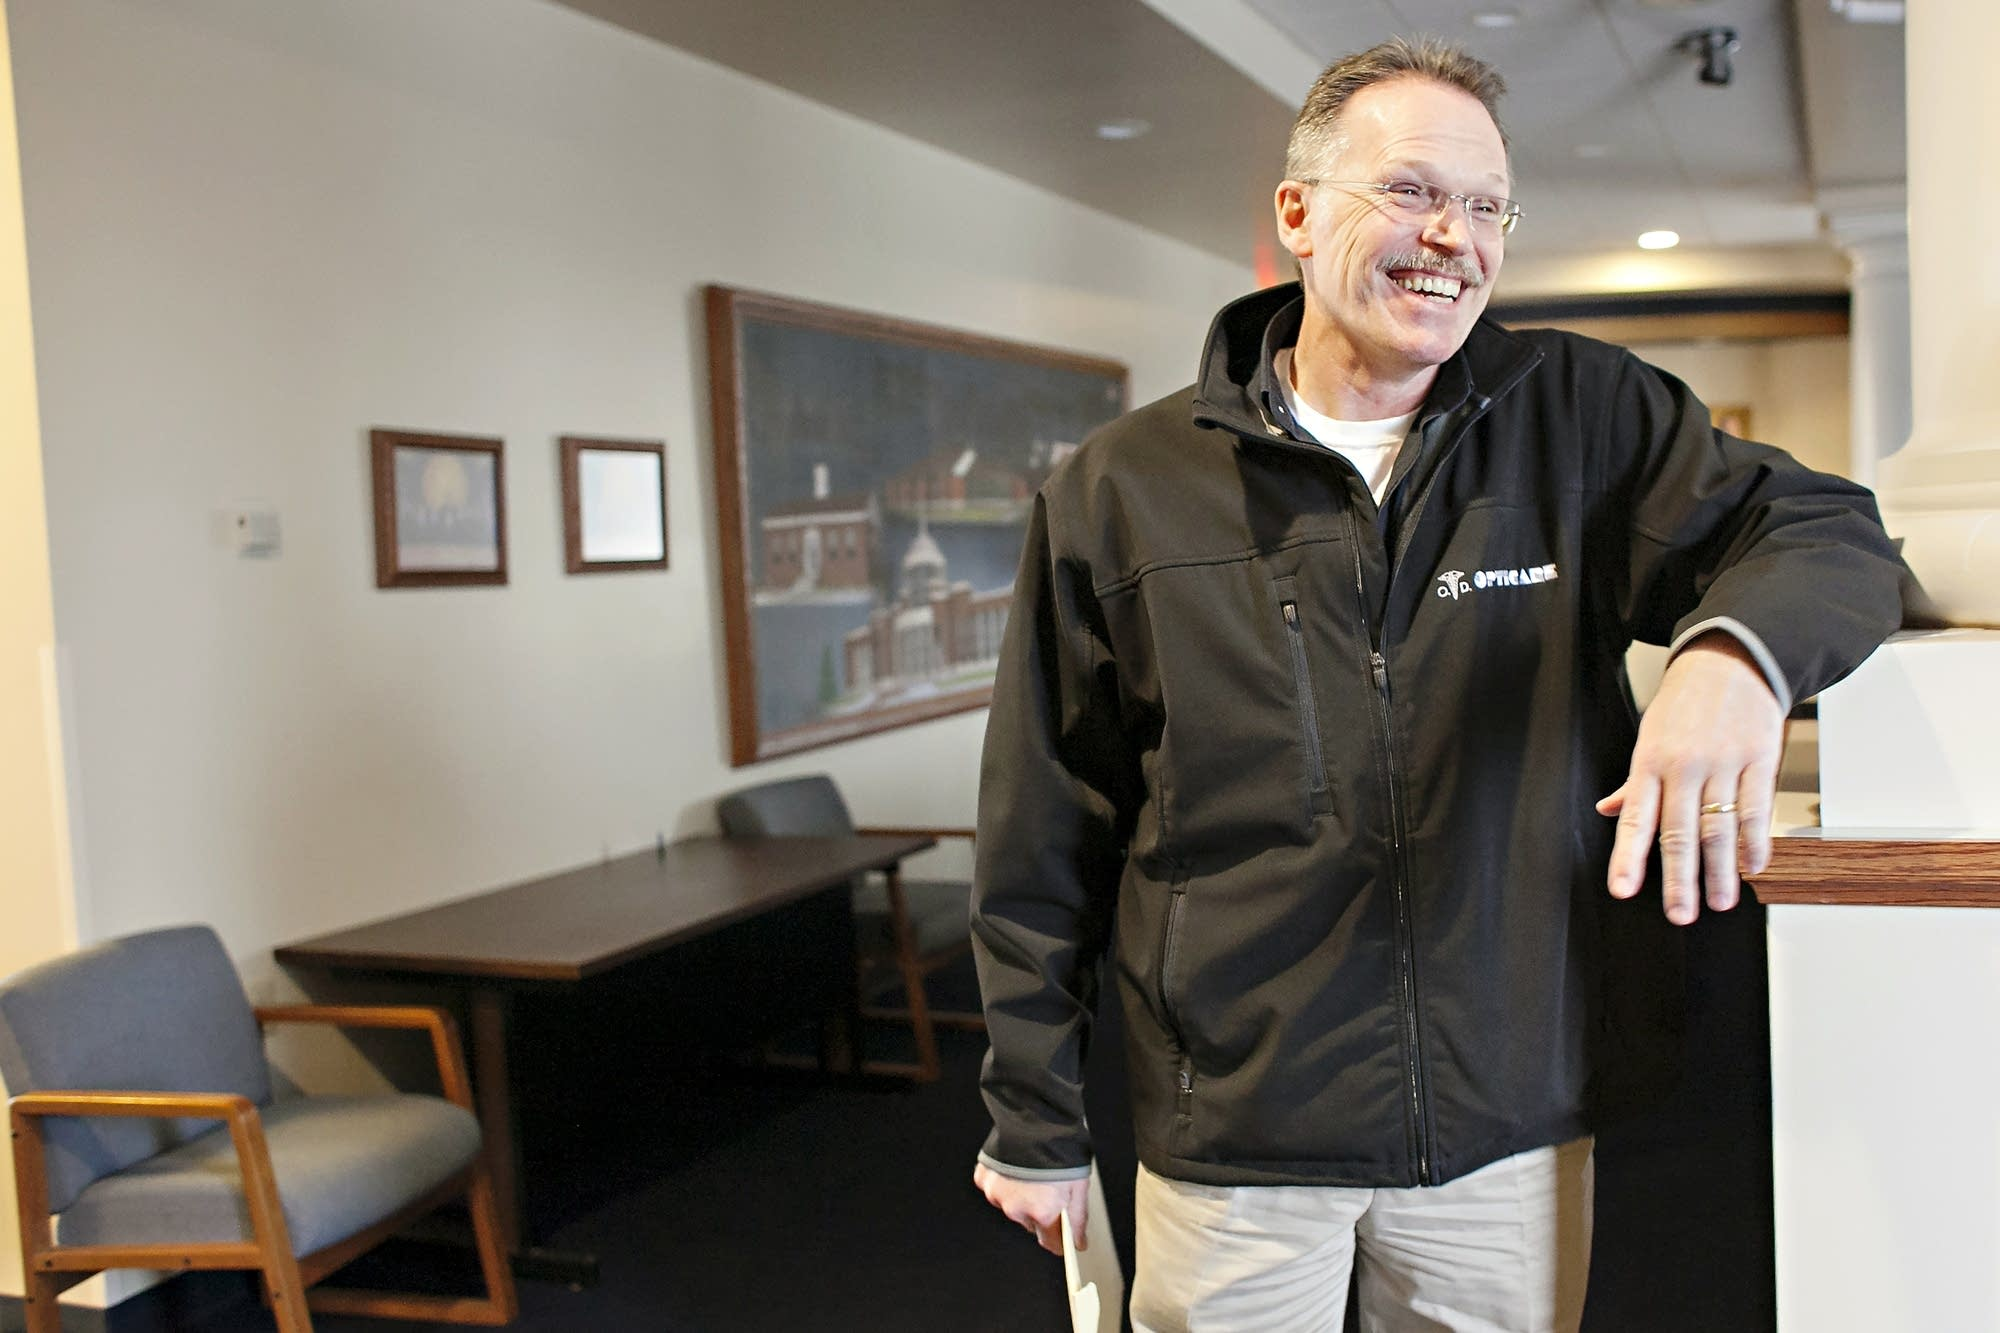 Steve Gander, 55, took office as mayor of East Grand Forks